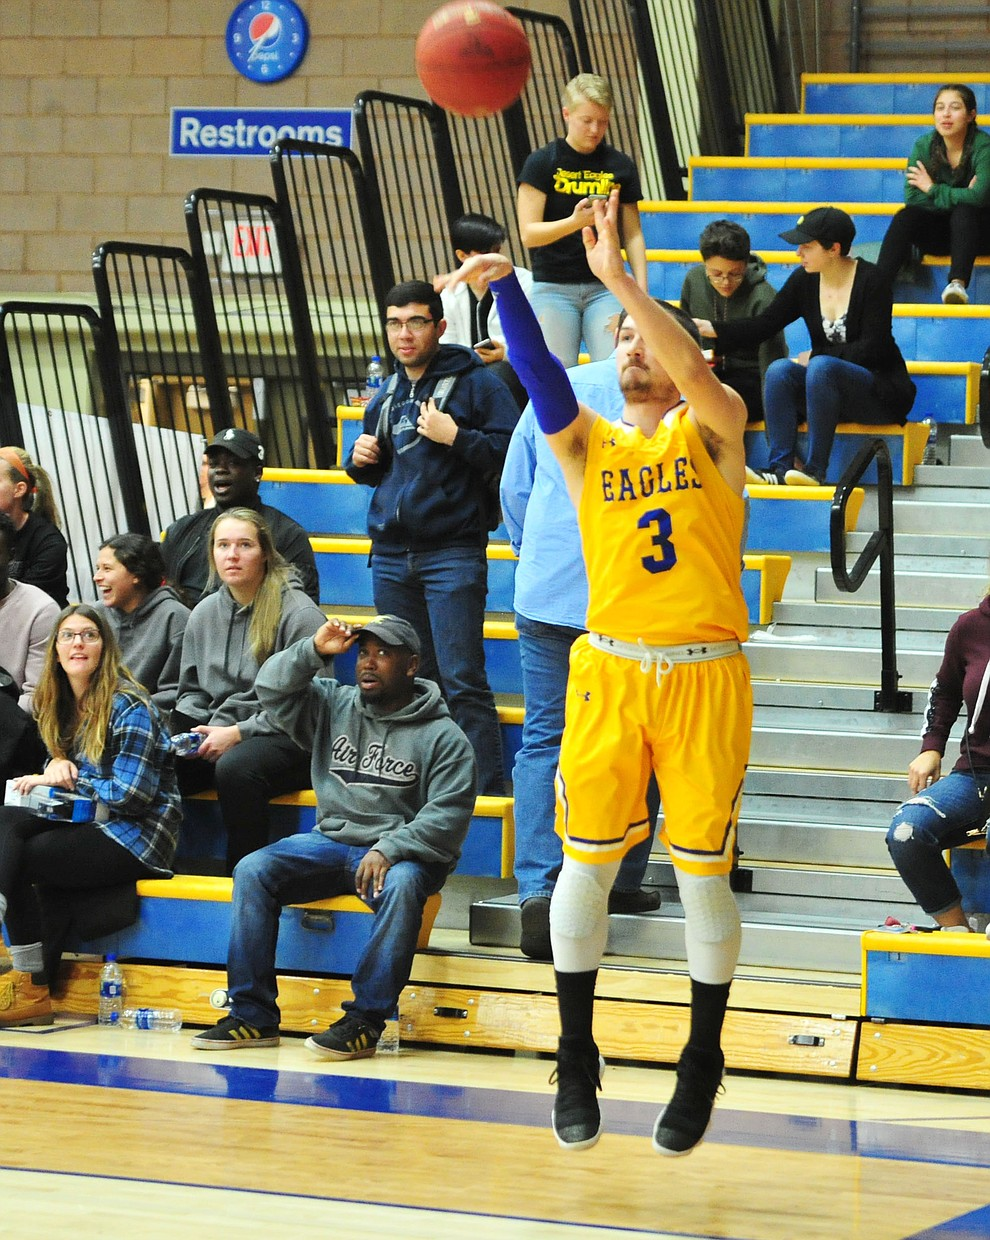 Embry Riddle's Ryan Skurdal launches a three-pointer as the Eagles take on the Simpson University Redhawks Thursday, Jan. 31, 2019 in Prescott. (Les Stukenberg/Courier).